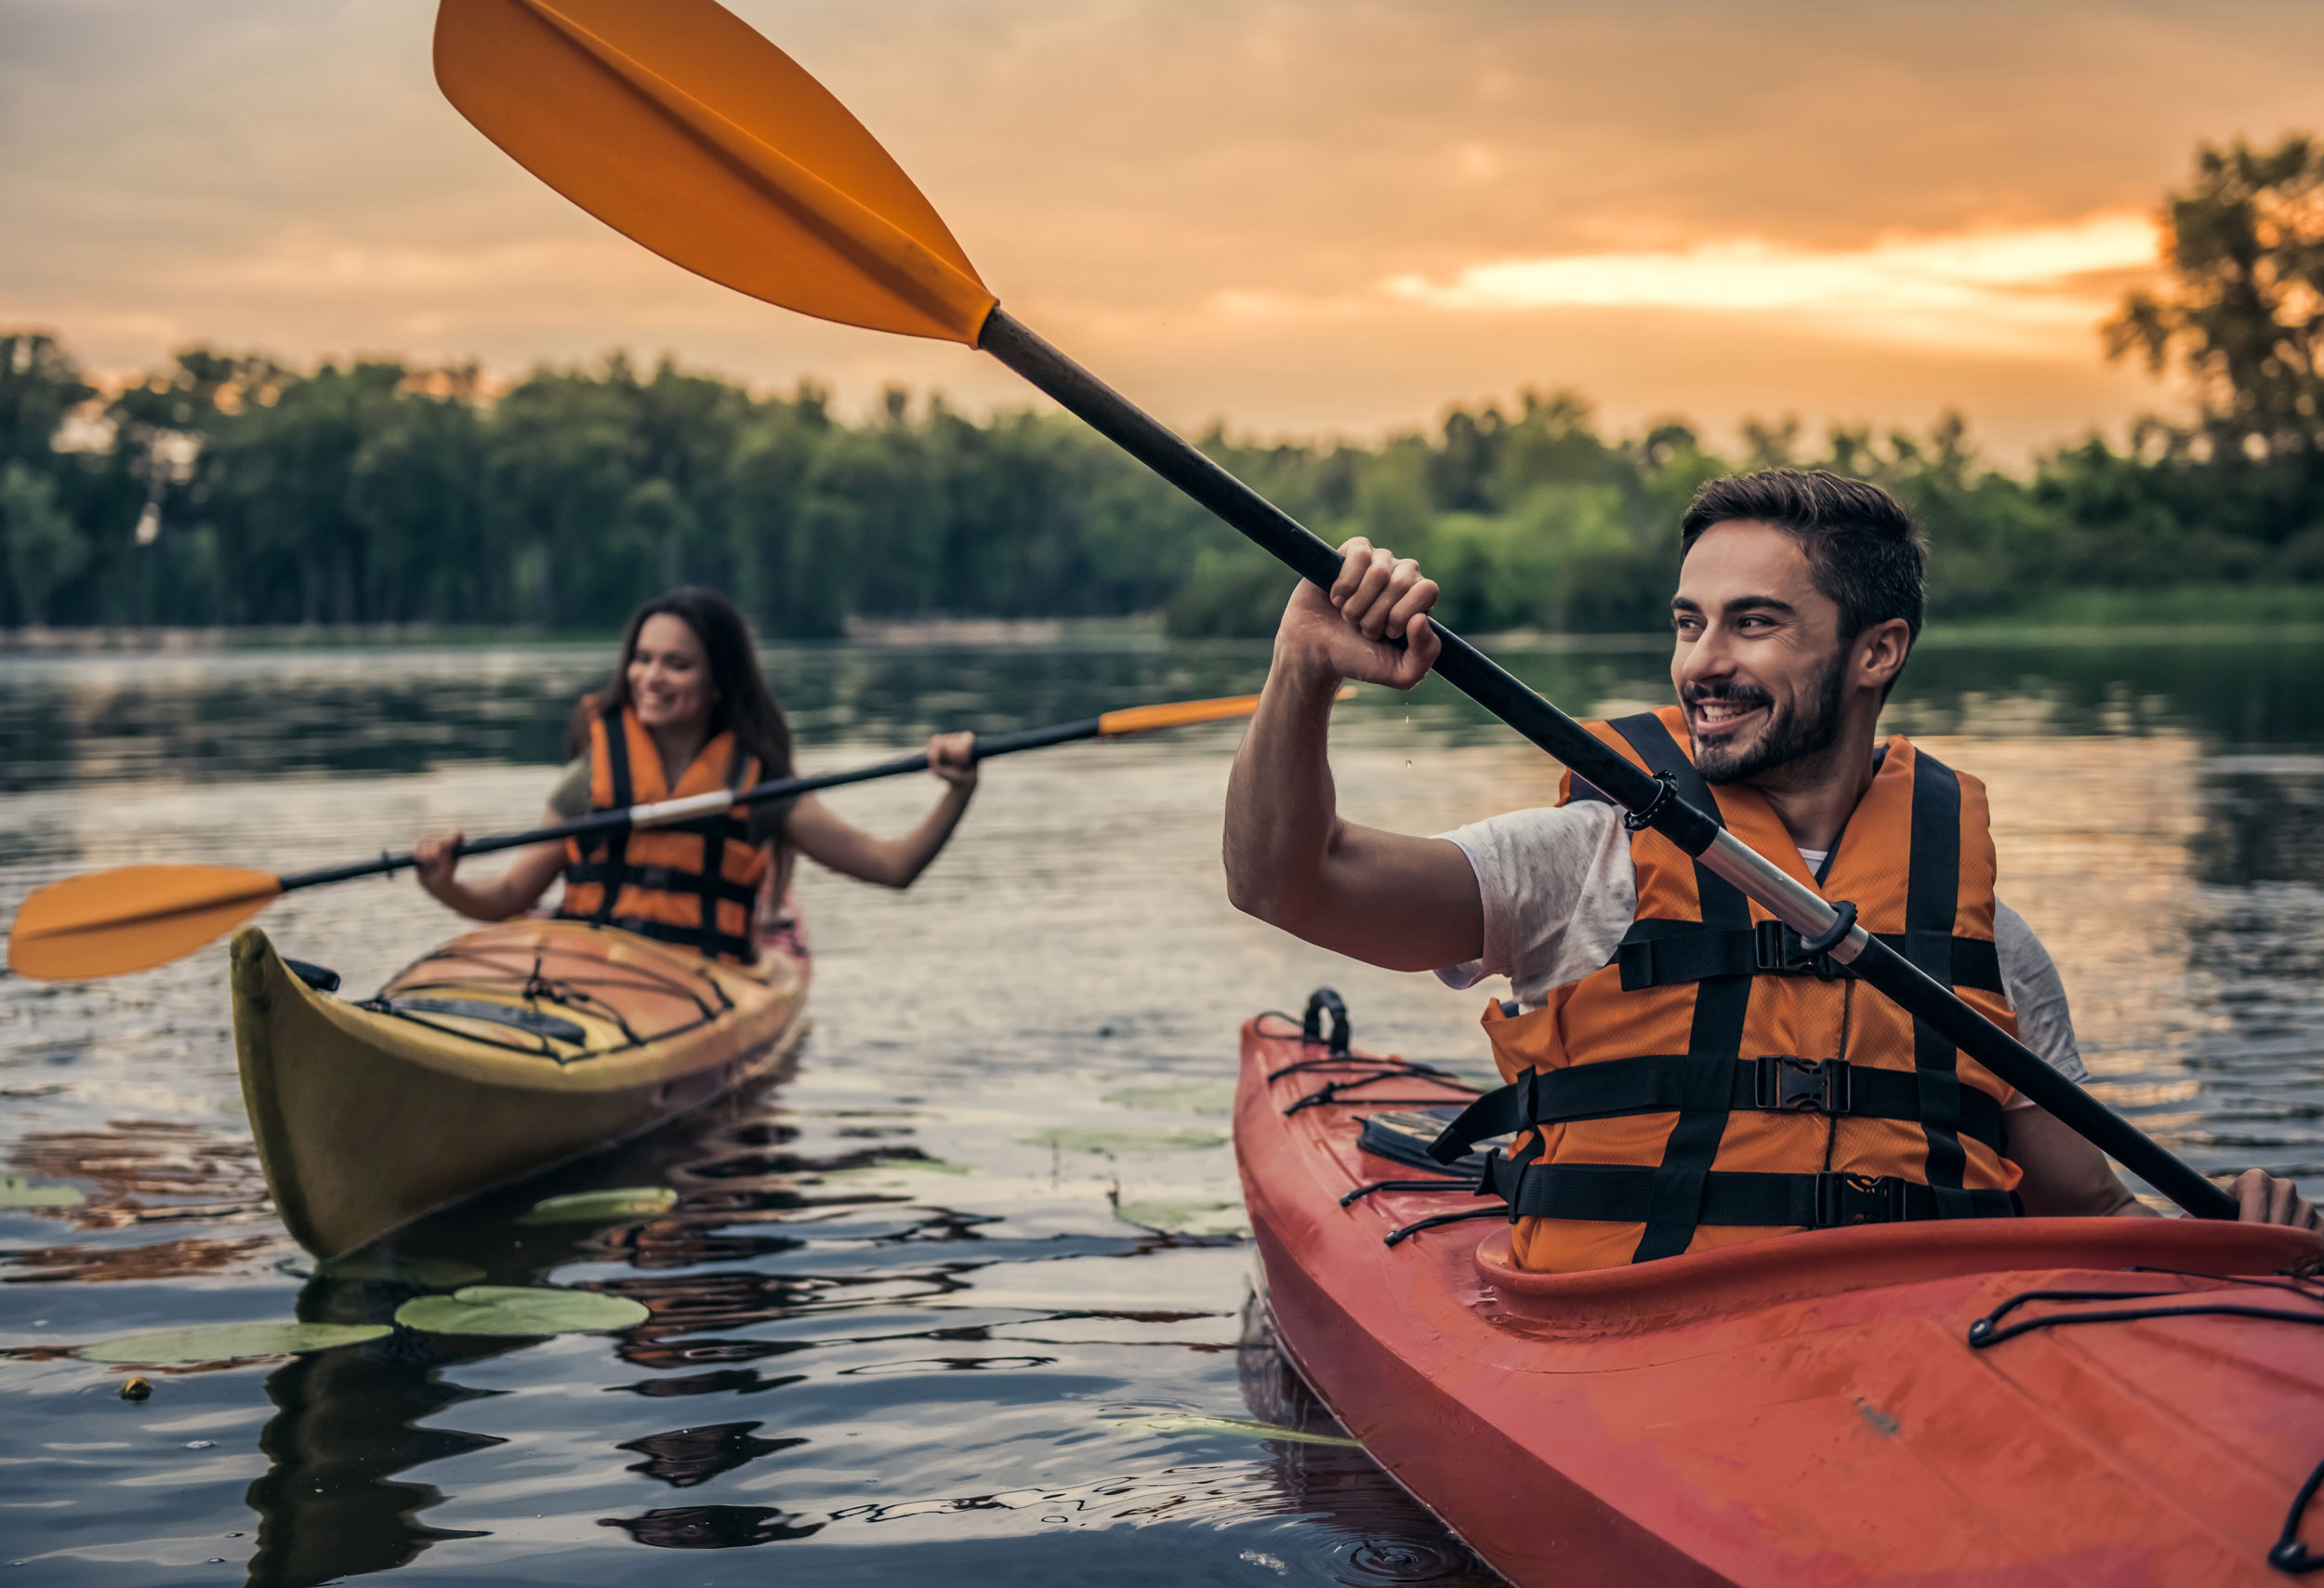 roanoke oral surgery kayaking